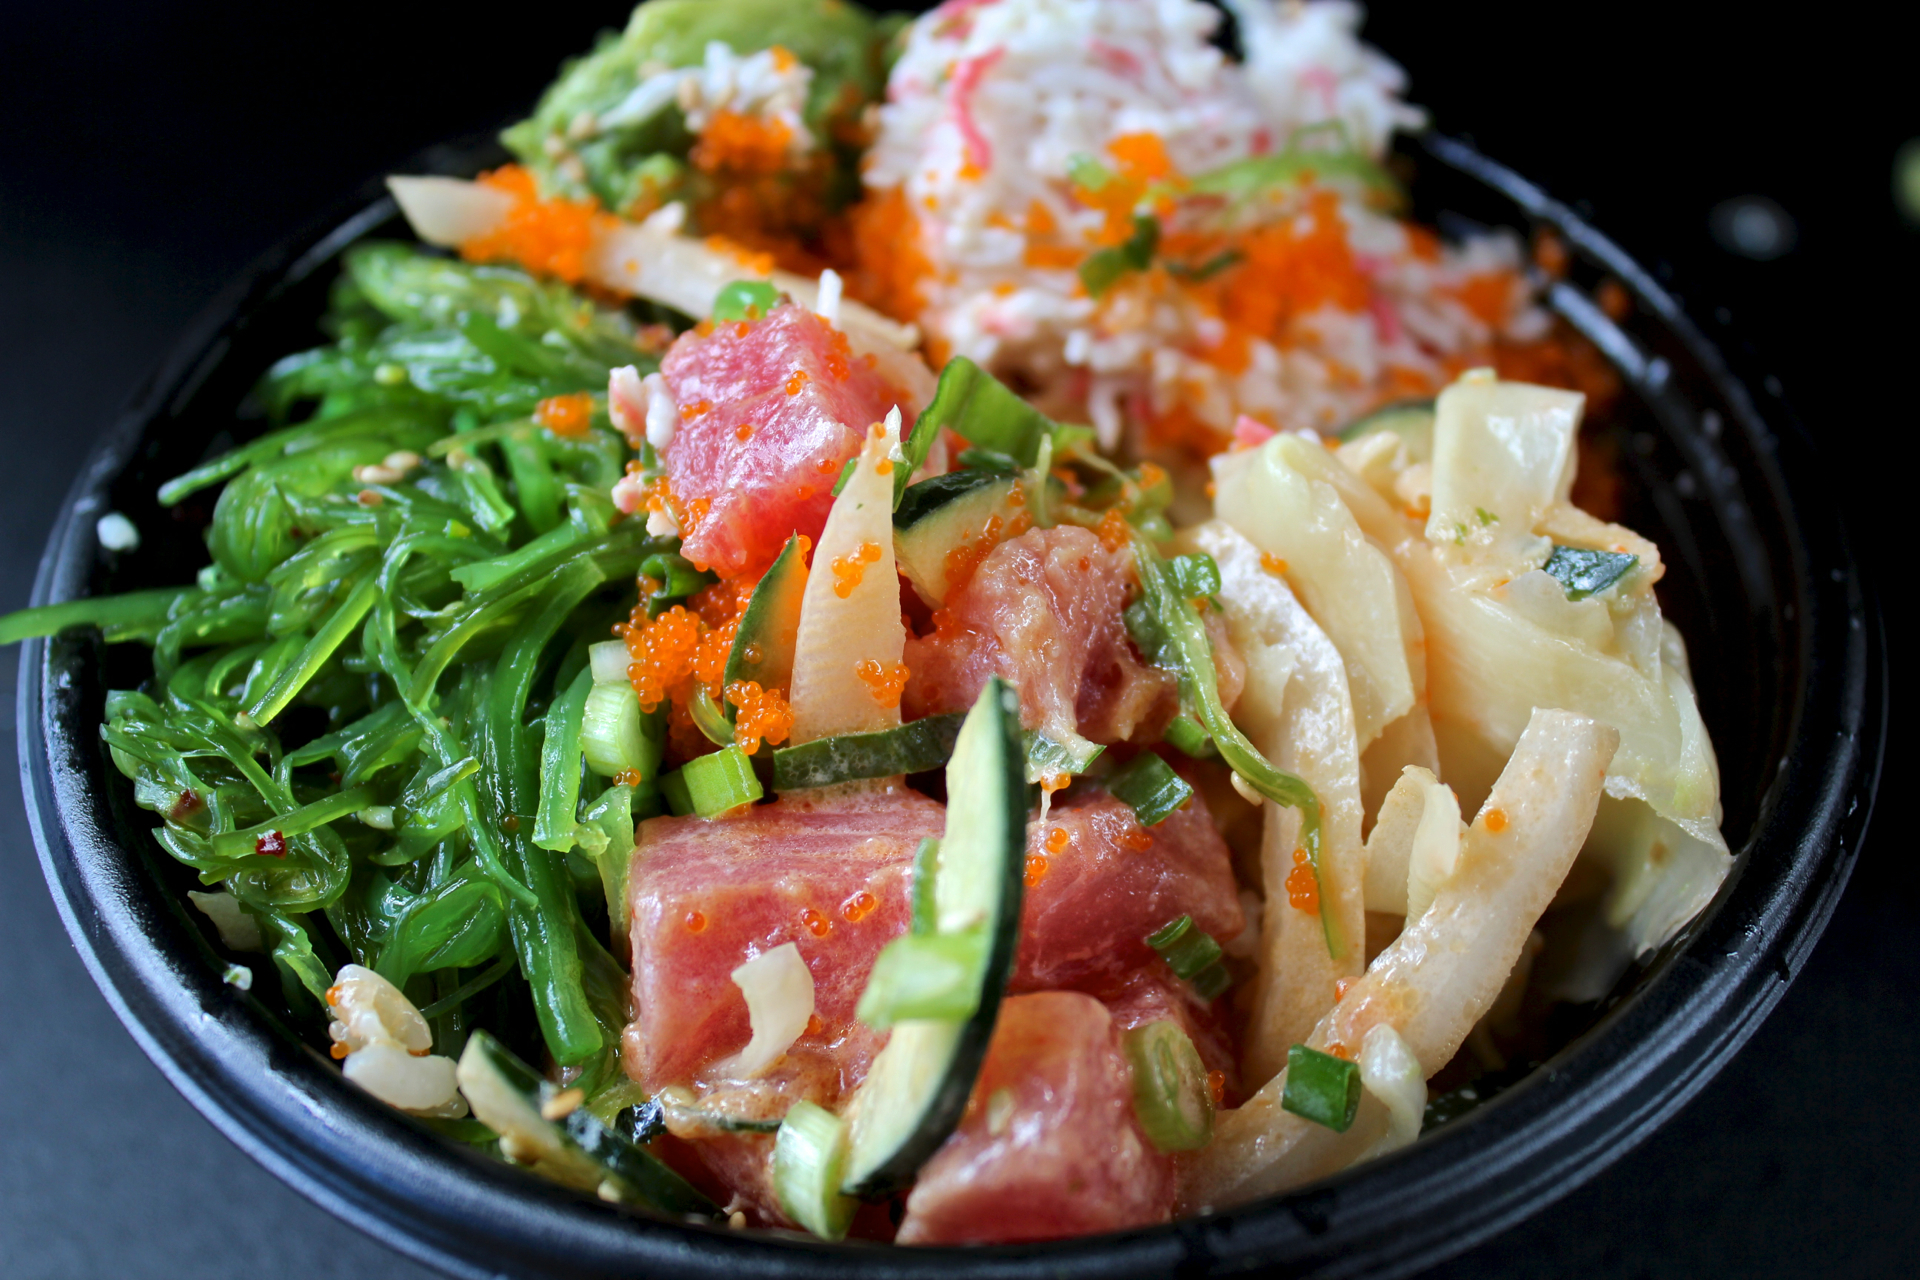 Ahi tuna and salmon with seaweed salad, ginger, cucumbers and green onions at Poki Bowl.